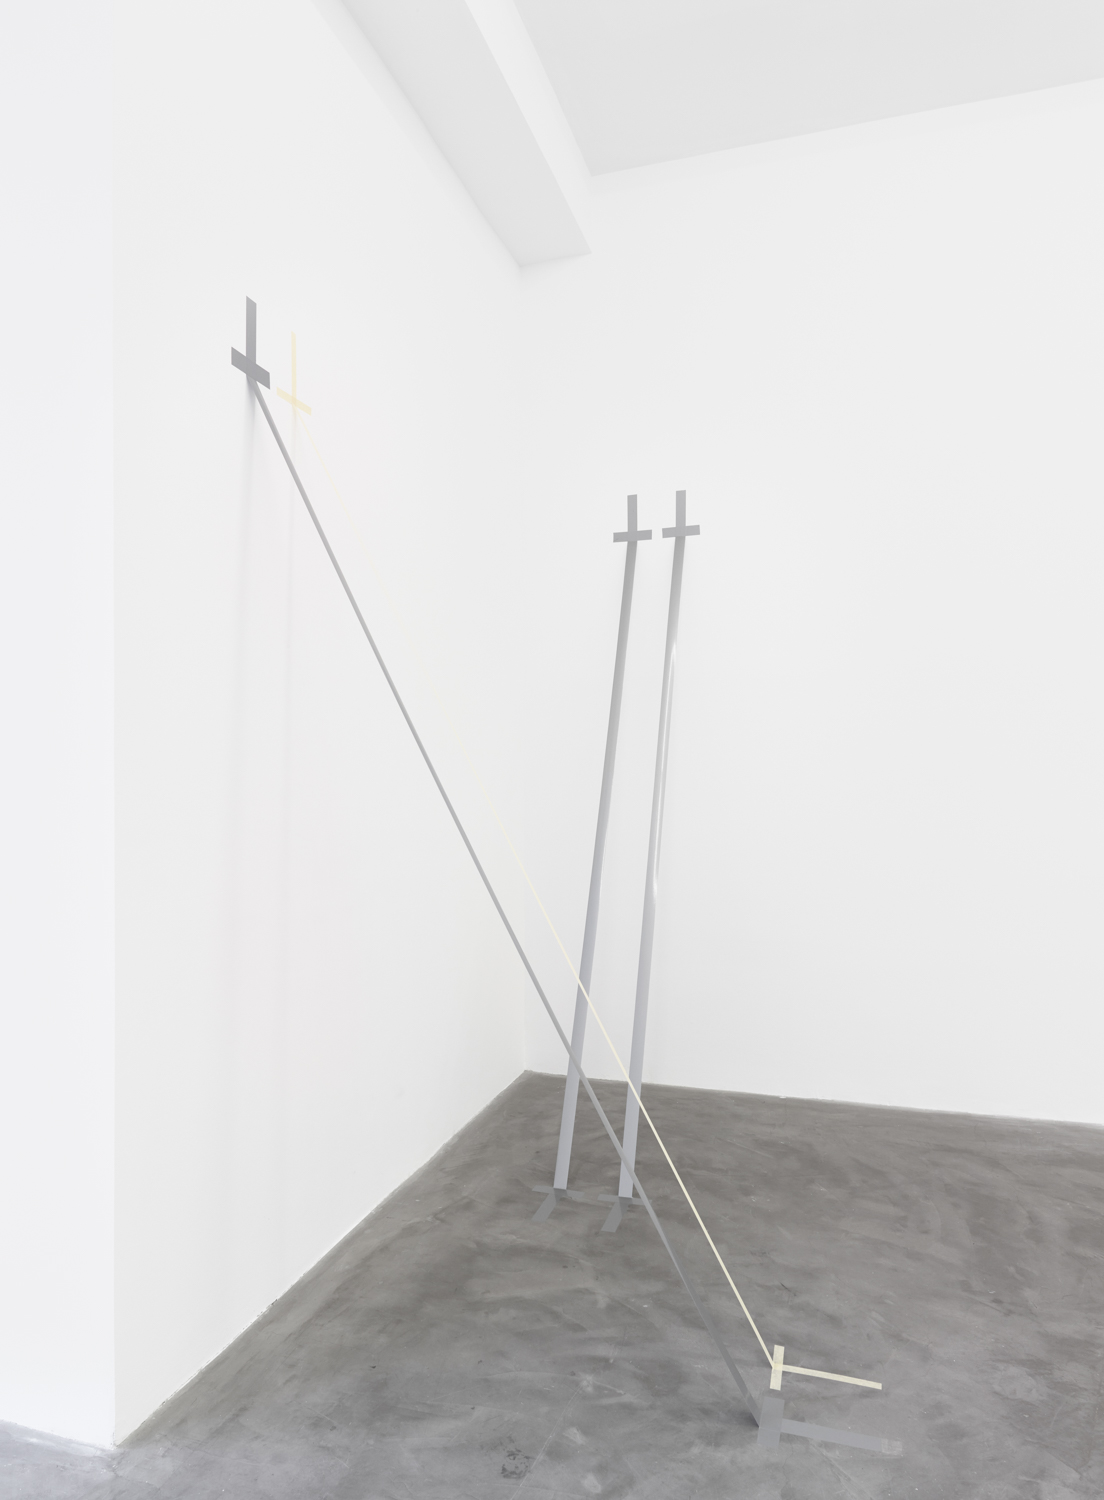 Tensegrity, 2018 duct tape and paper tape installation Dimensions Variable